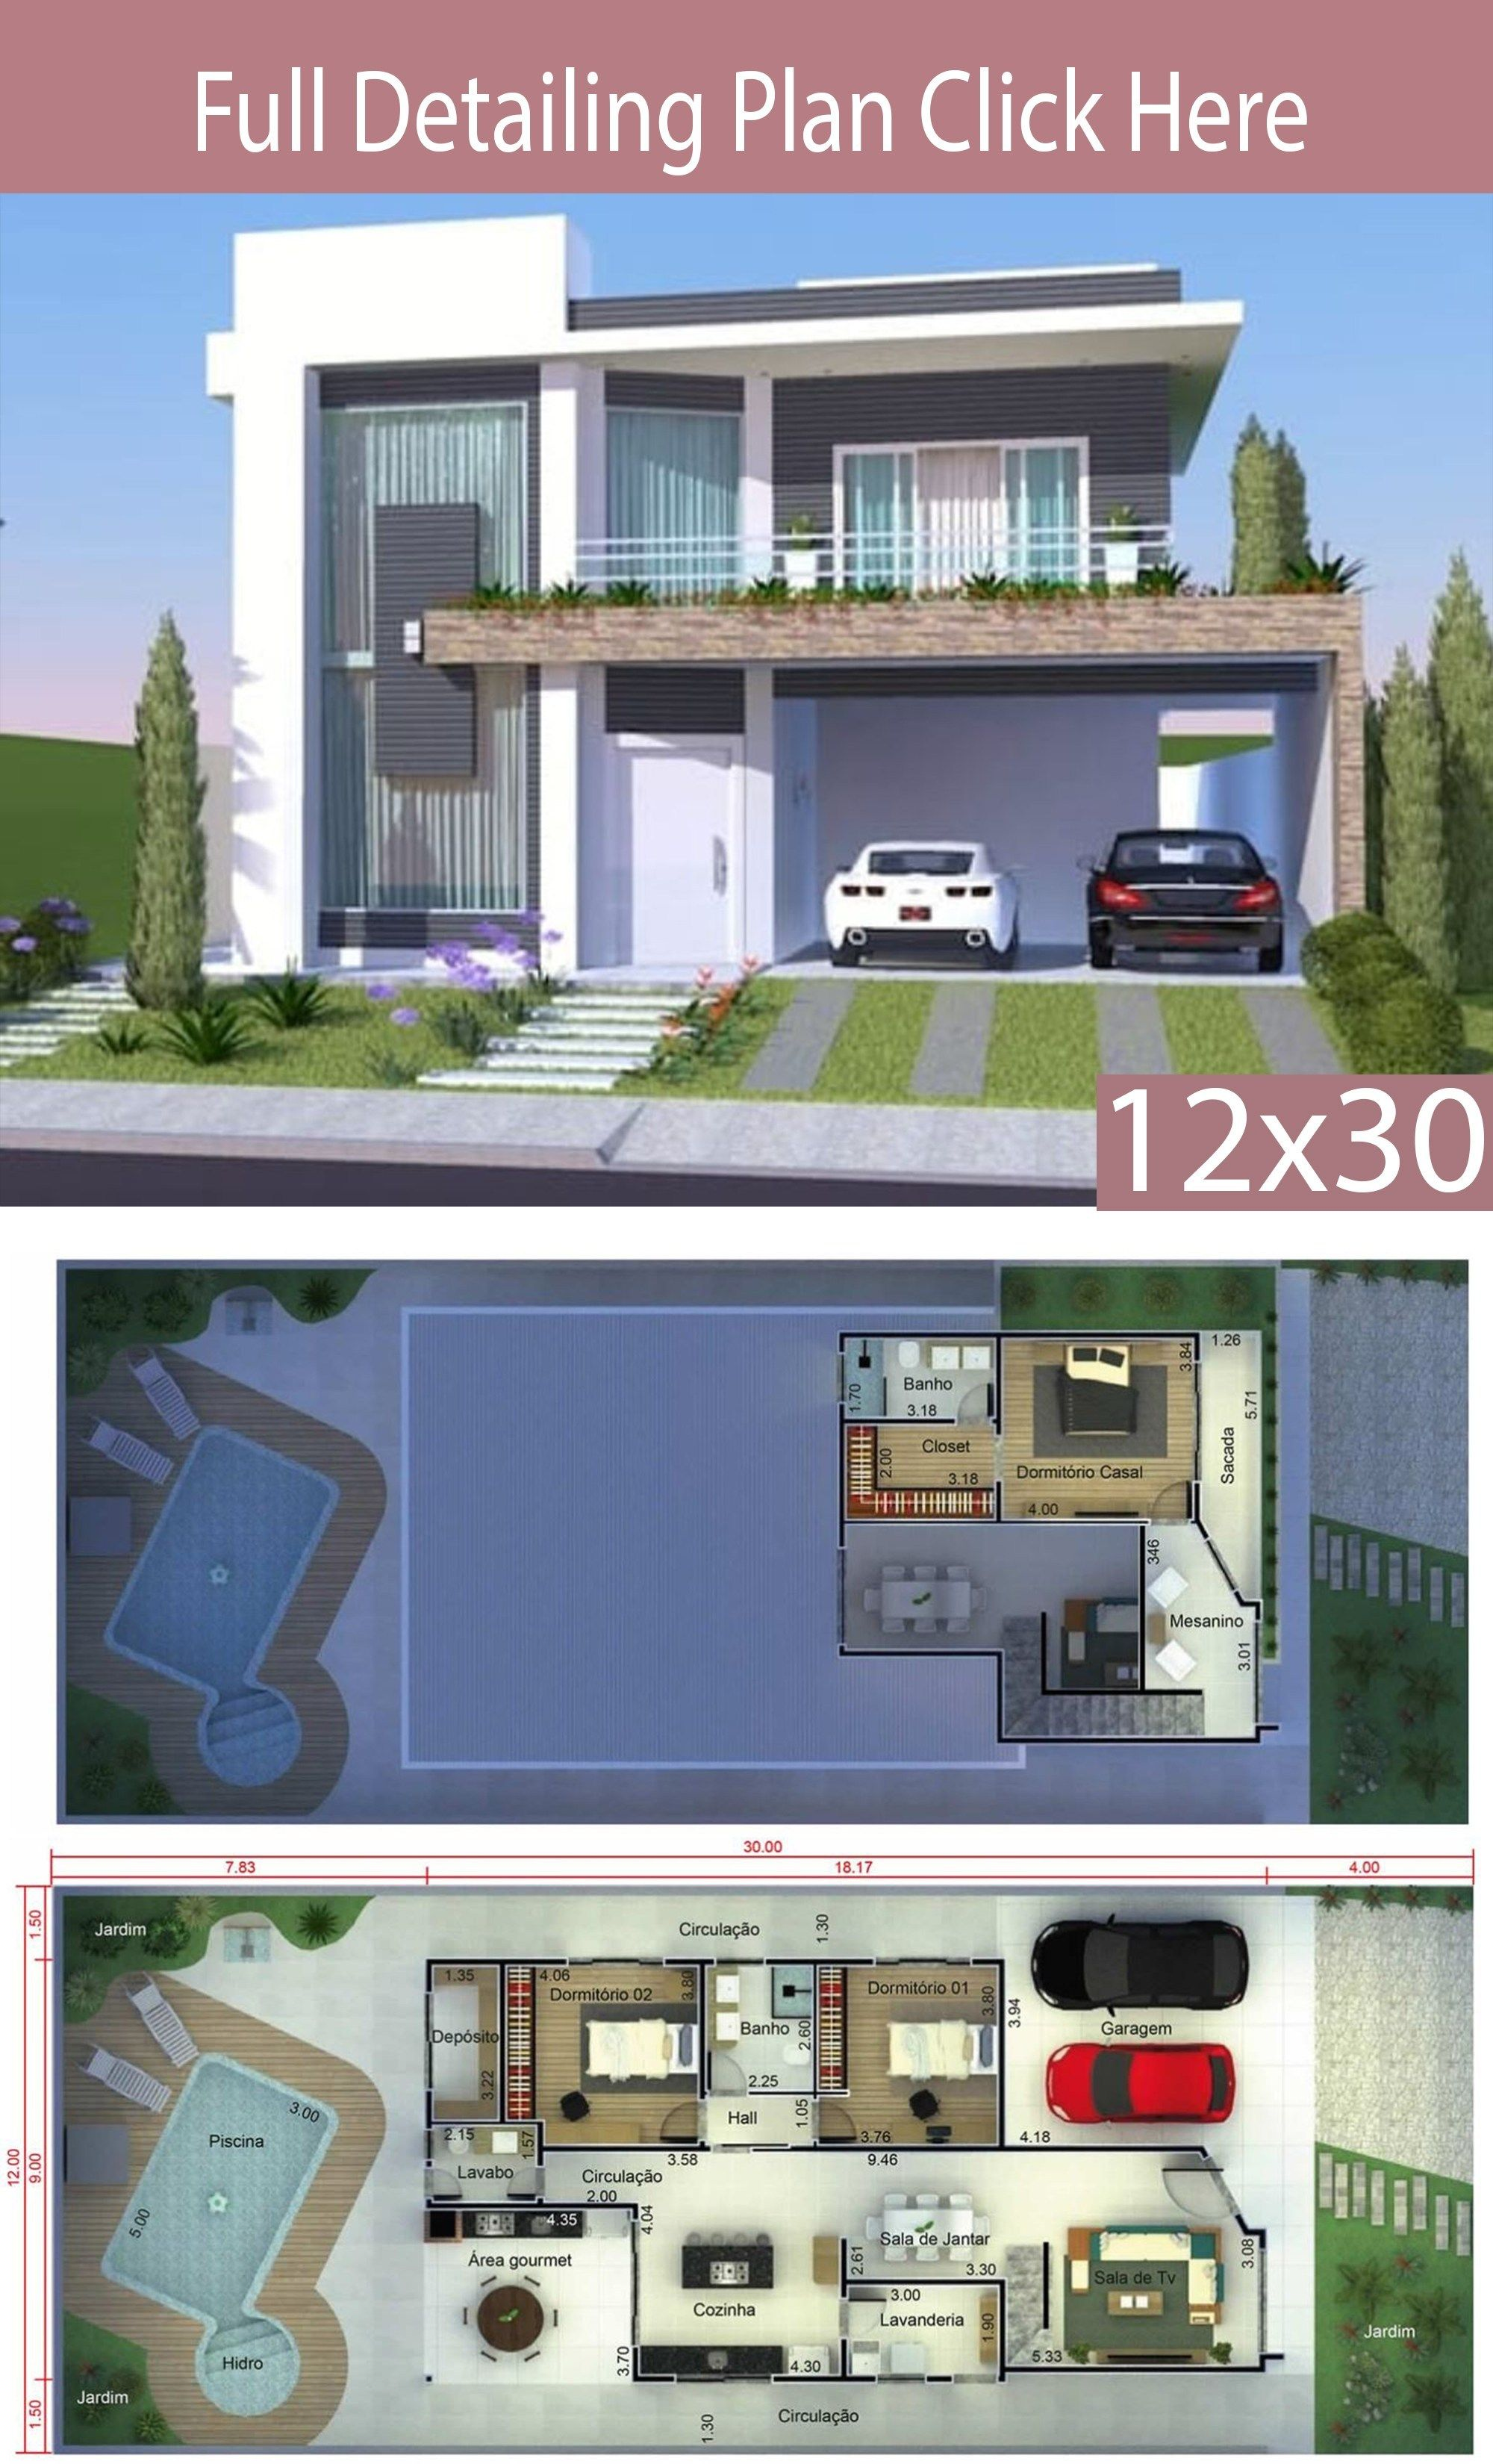 Home Design 12x30 Meters 3 Bedrooms Home Design With Plan House Design Architectural Design House Plans Architecture Model House